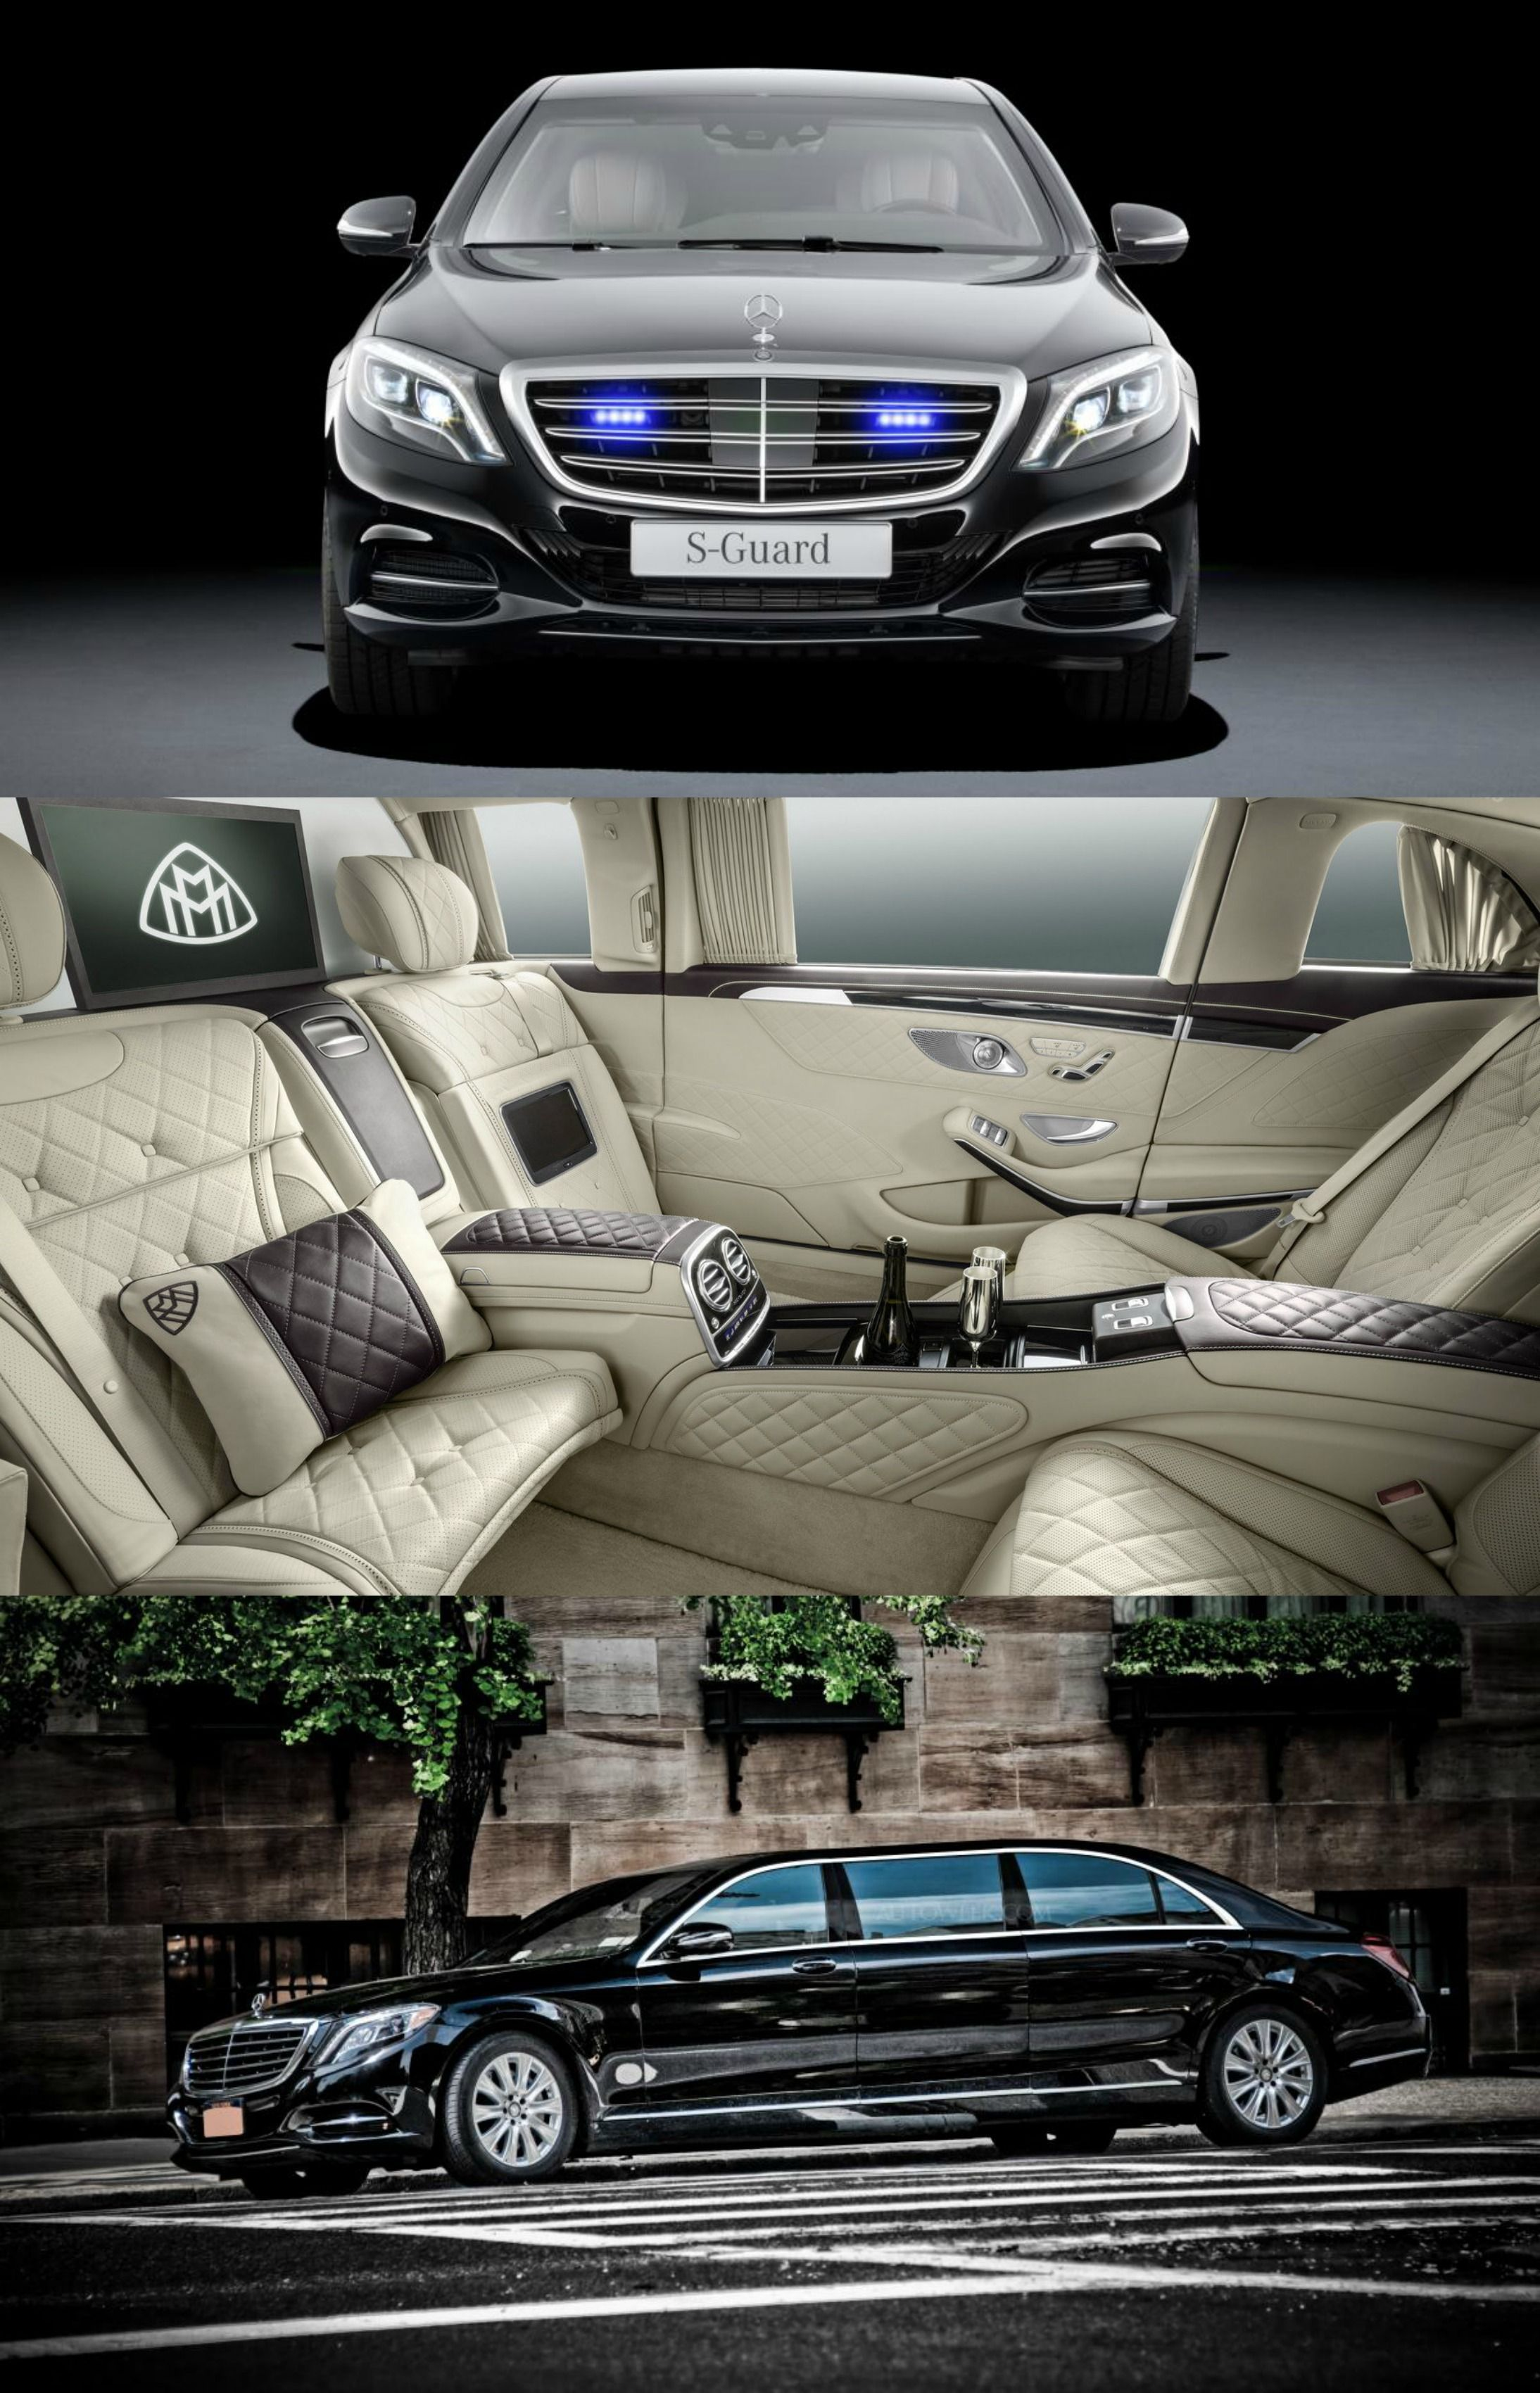 Your Luxury Is Protected MercedesMaybach Pullman Guard